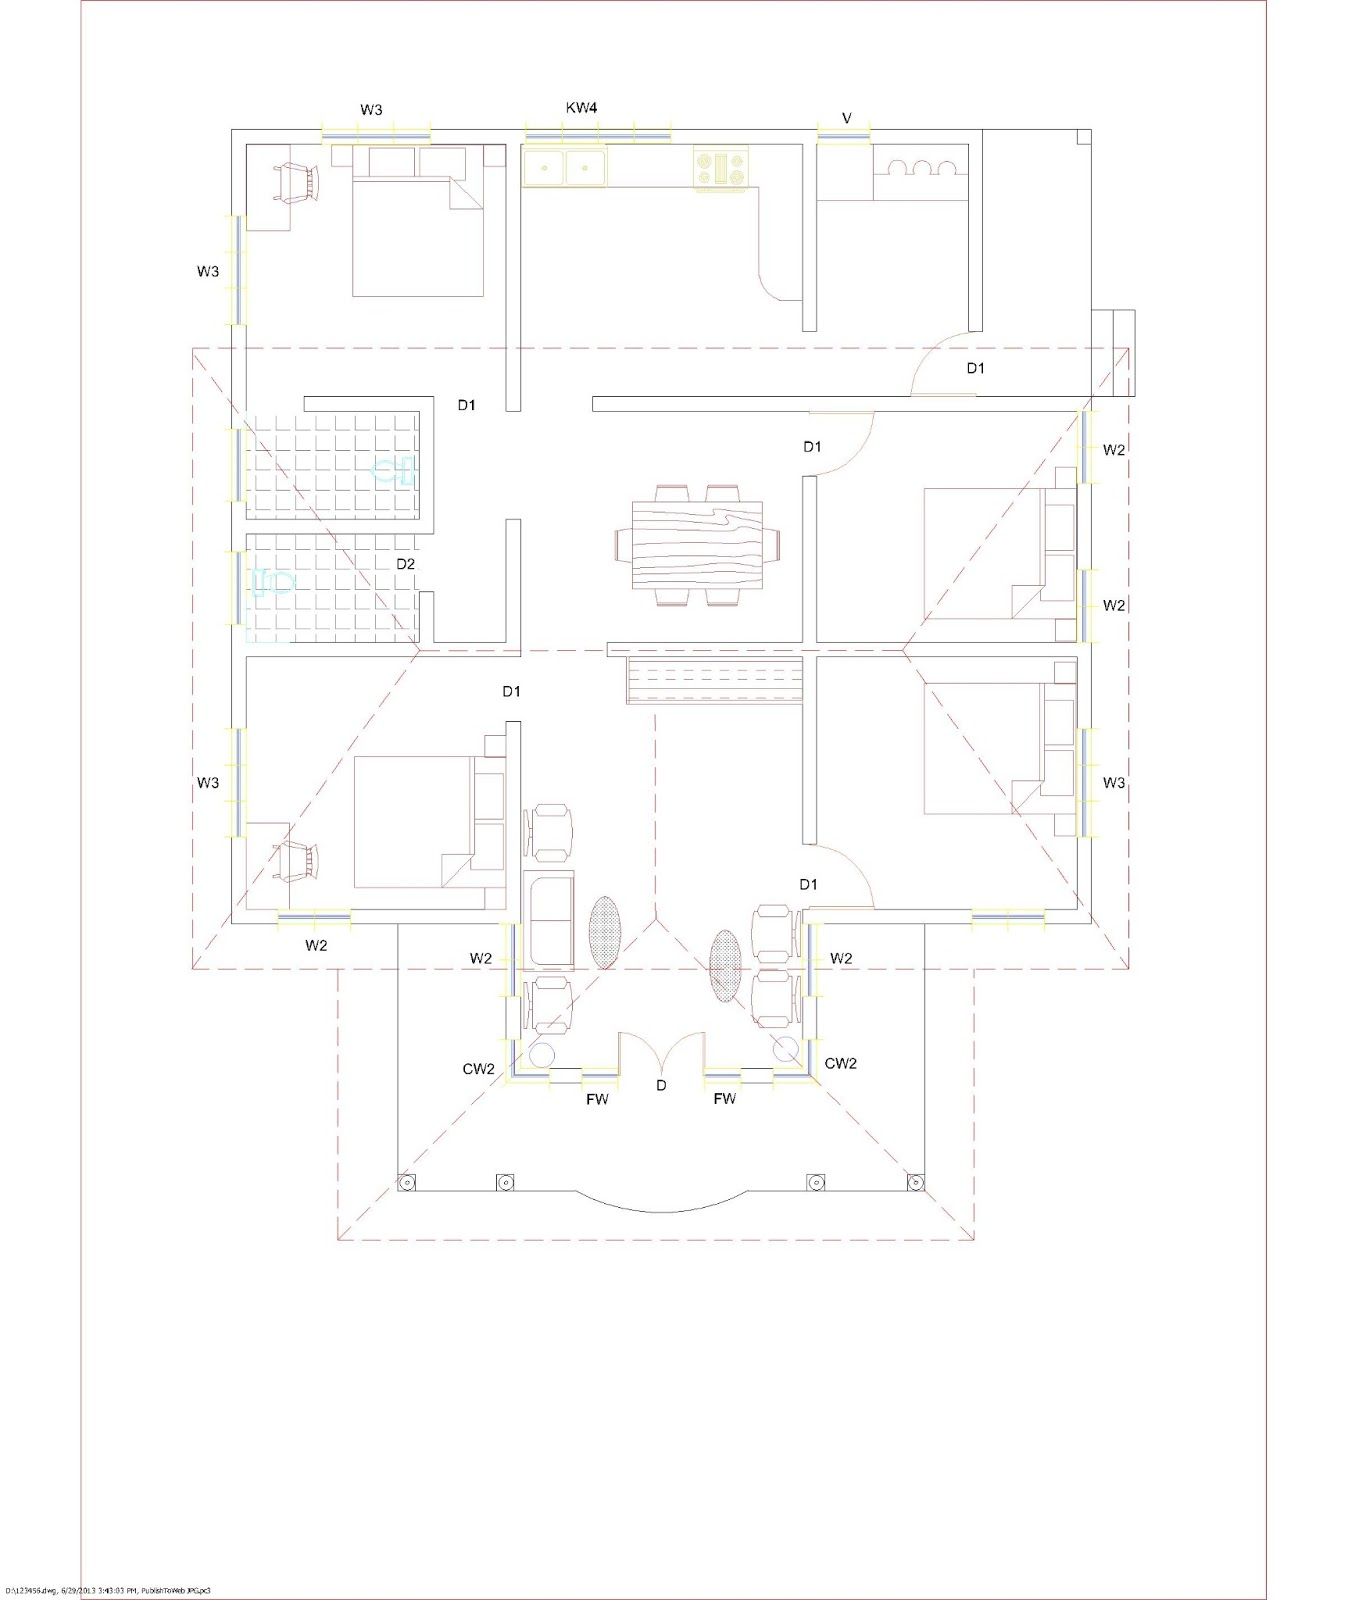 Ente veedu house plans for Veedu plans and elevations